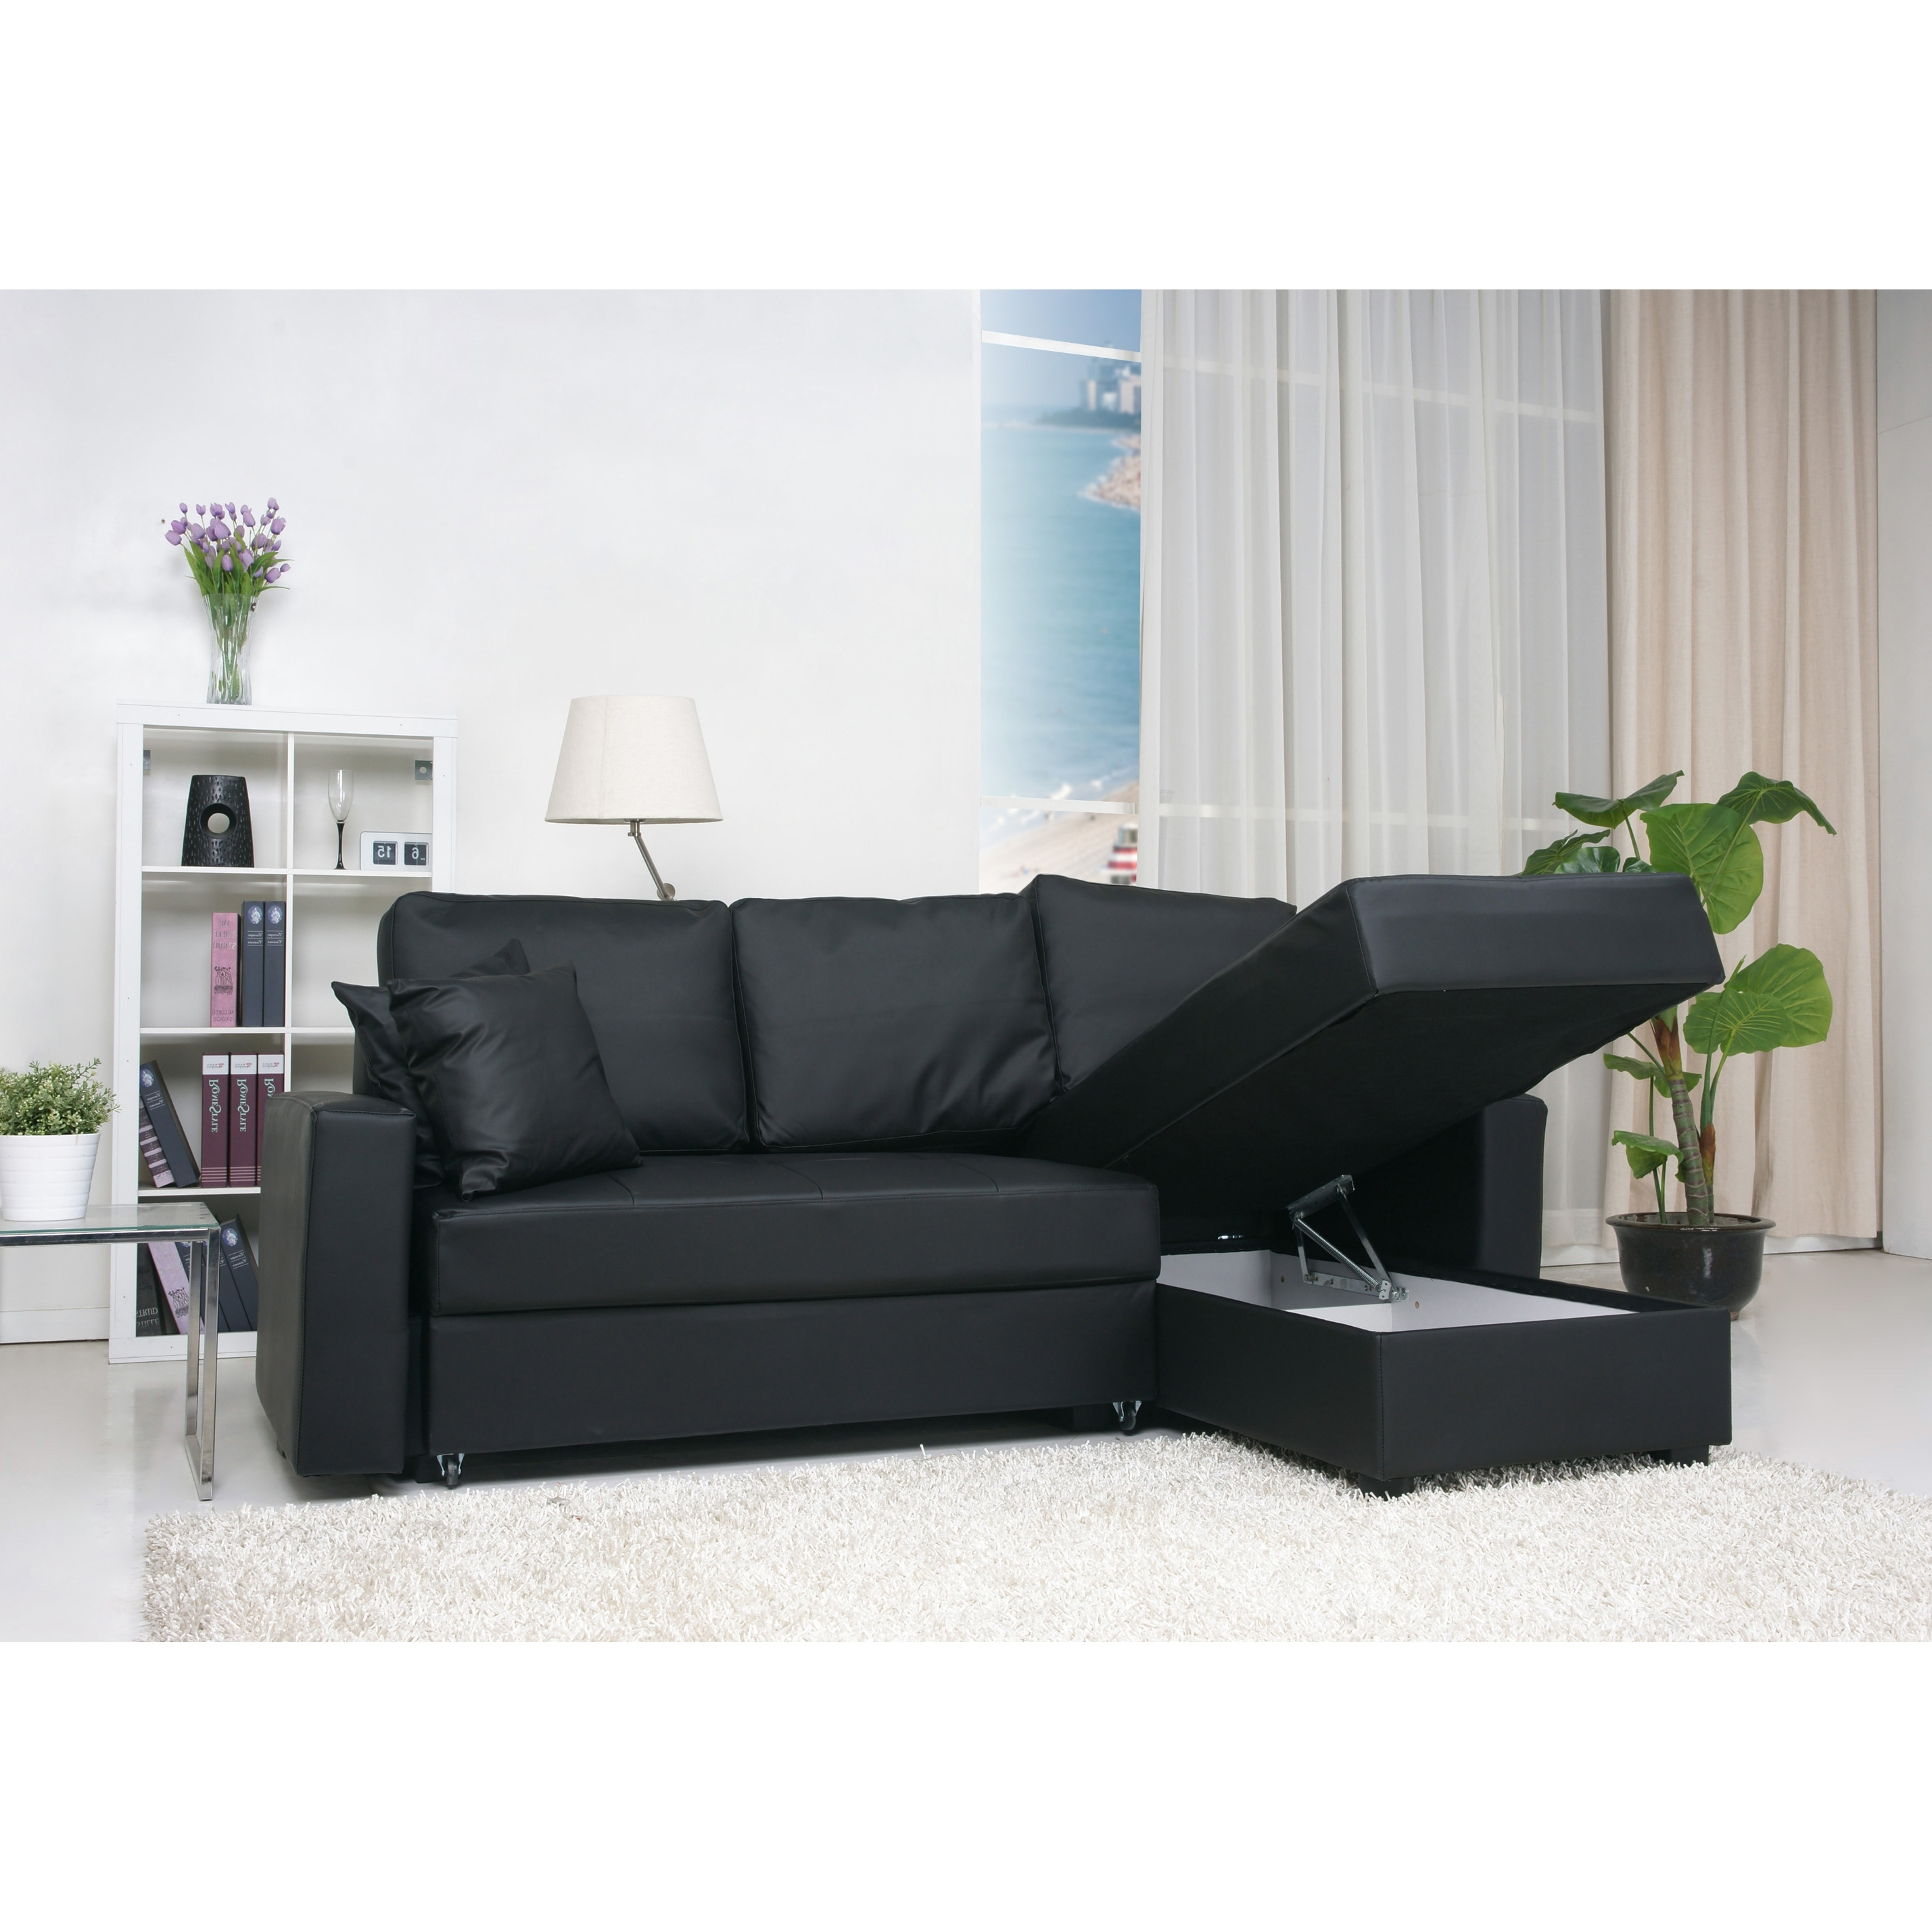 Fashionable Sectional Sofas At Ebay Pertaining To Furniture & Sofa: Compact Sectional Sofas (View 7 of 15)